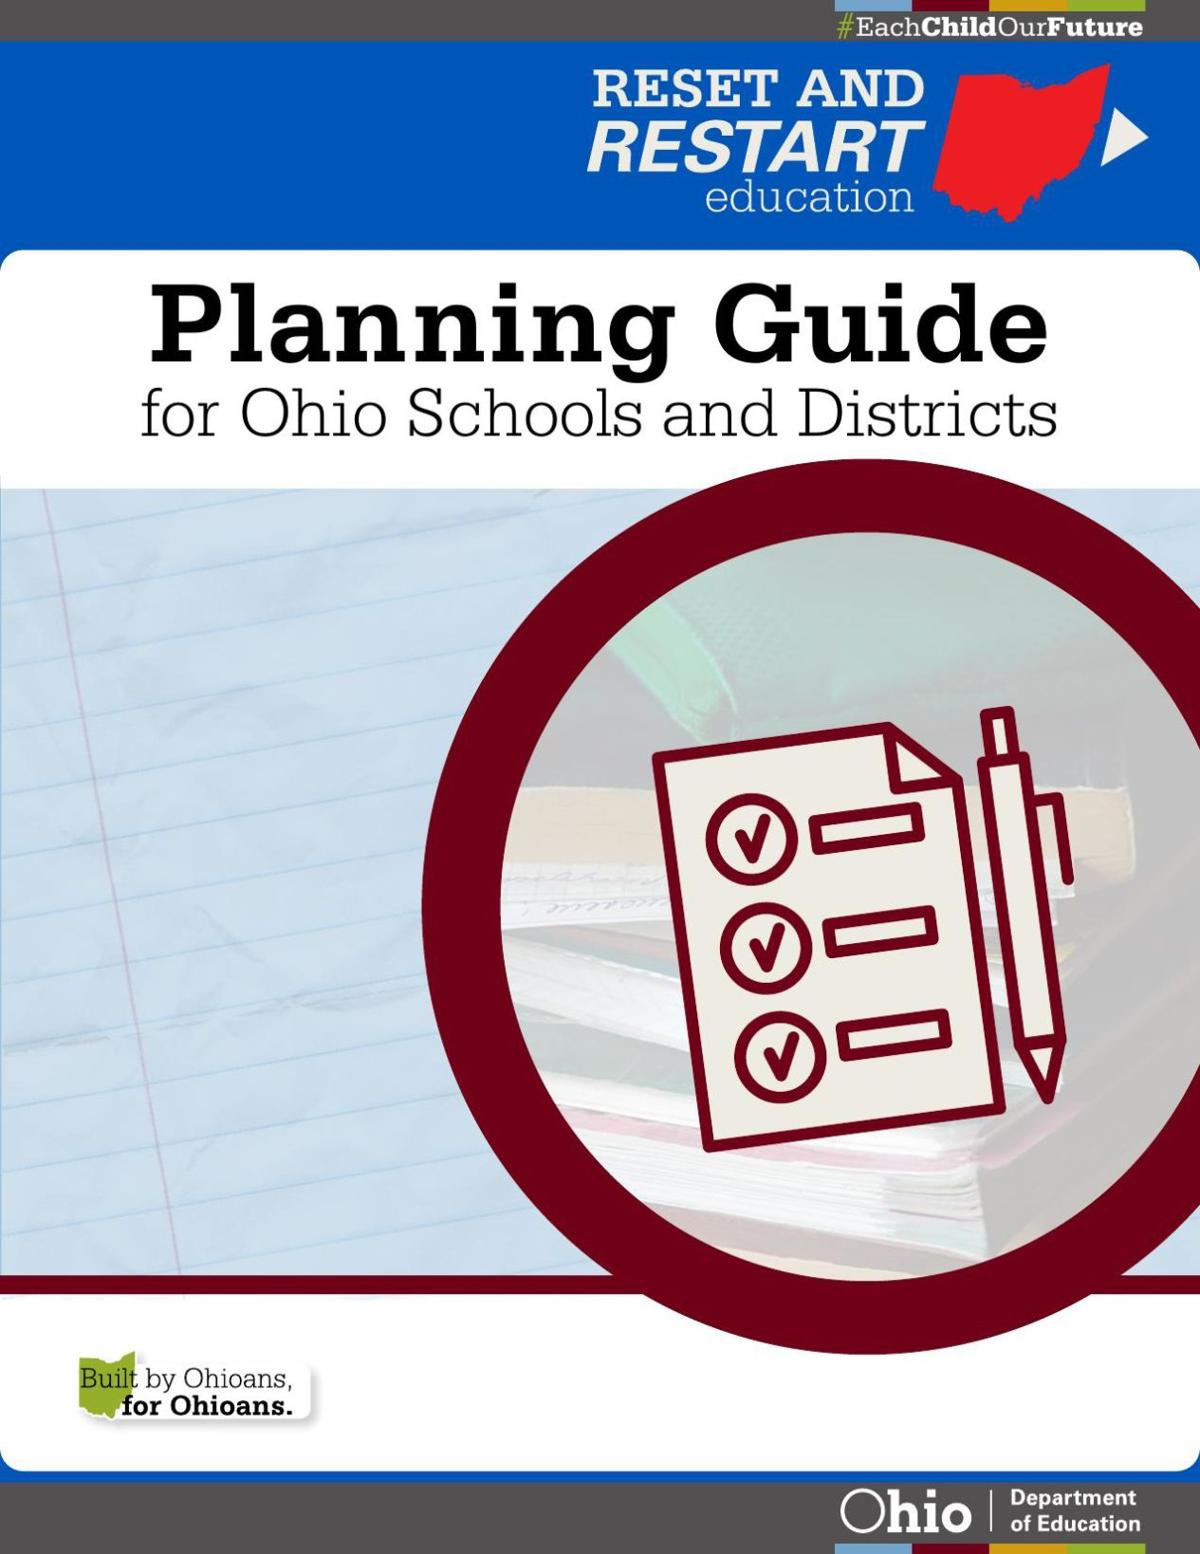 Reset and Restart Education in Ohio